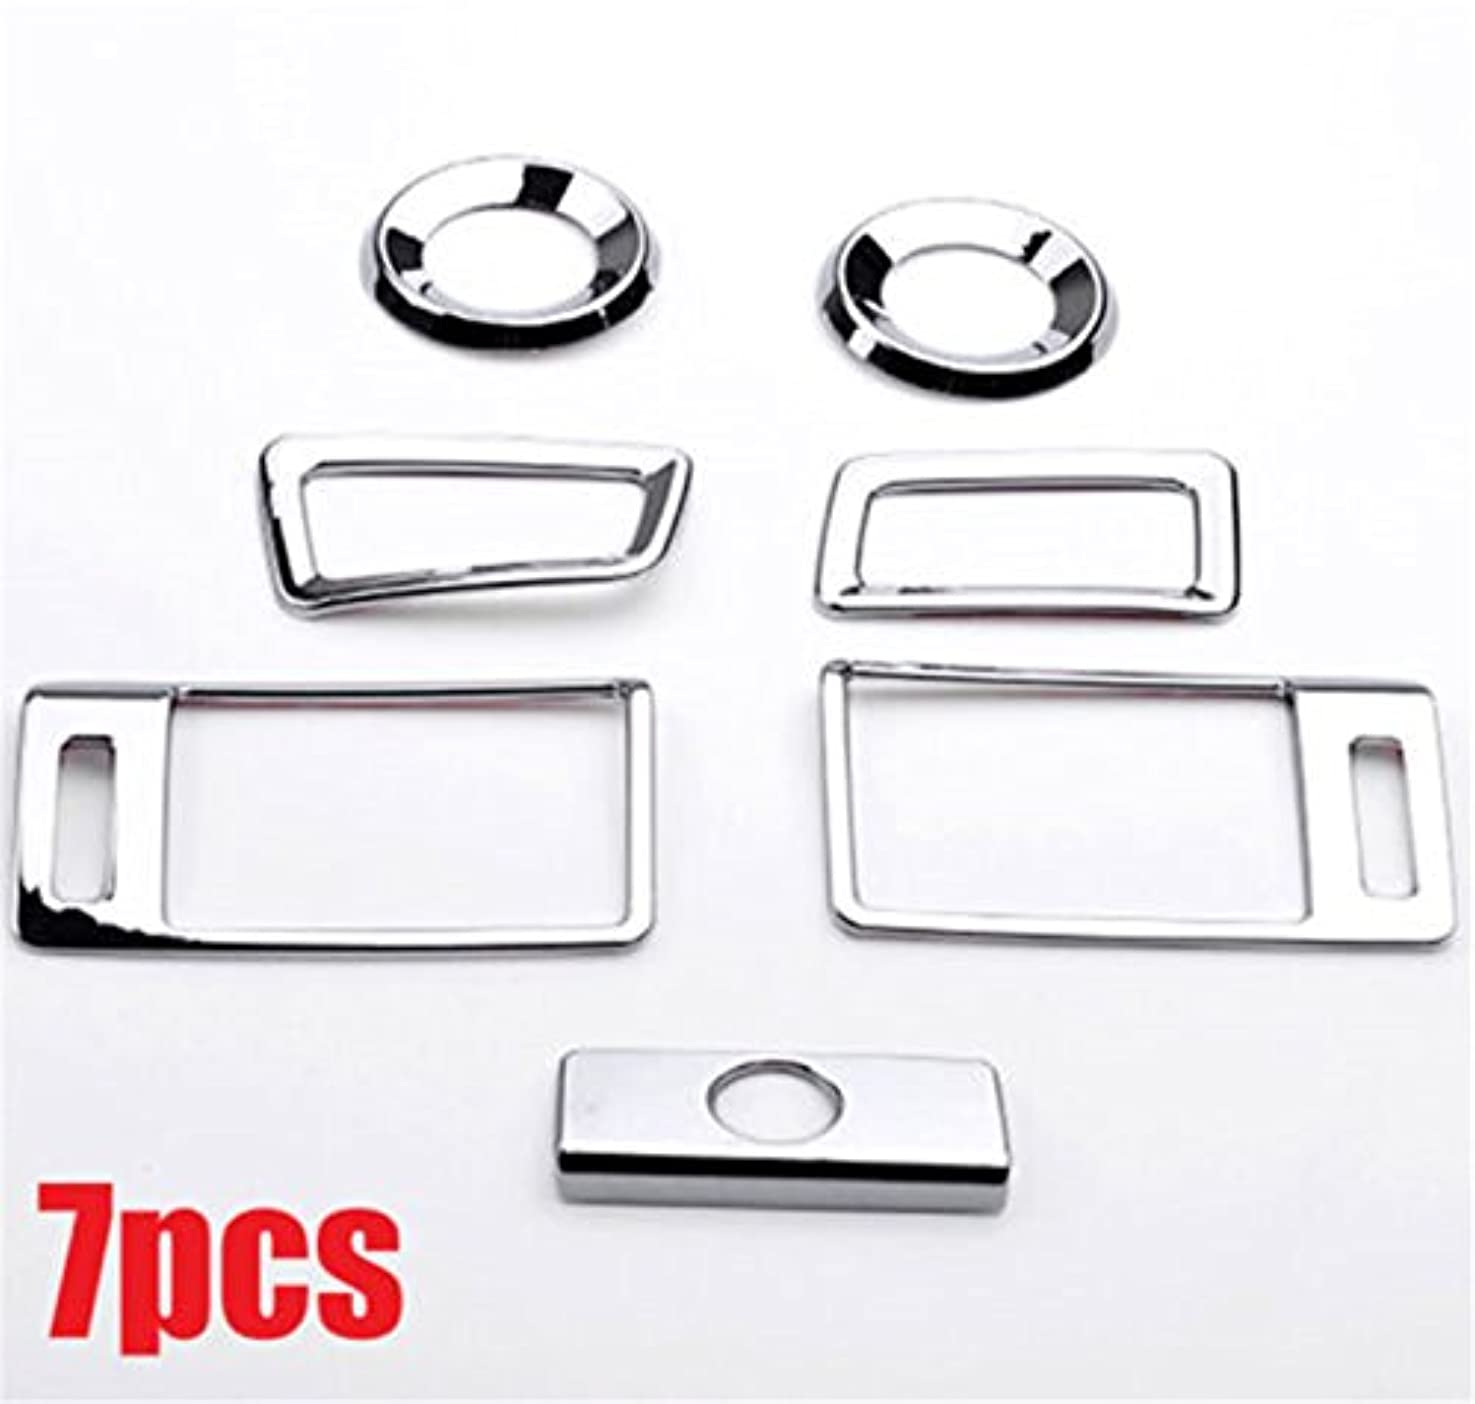 Jicorzo - 7pcs Car Air Vent Door Speaker Chrome Trim Cover Fit For Honda Accord 2013-2017 Bezel Car Interior Accessories Styling